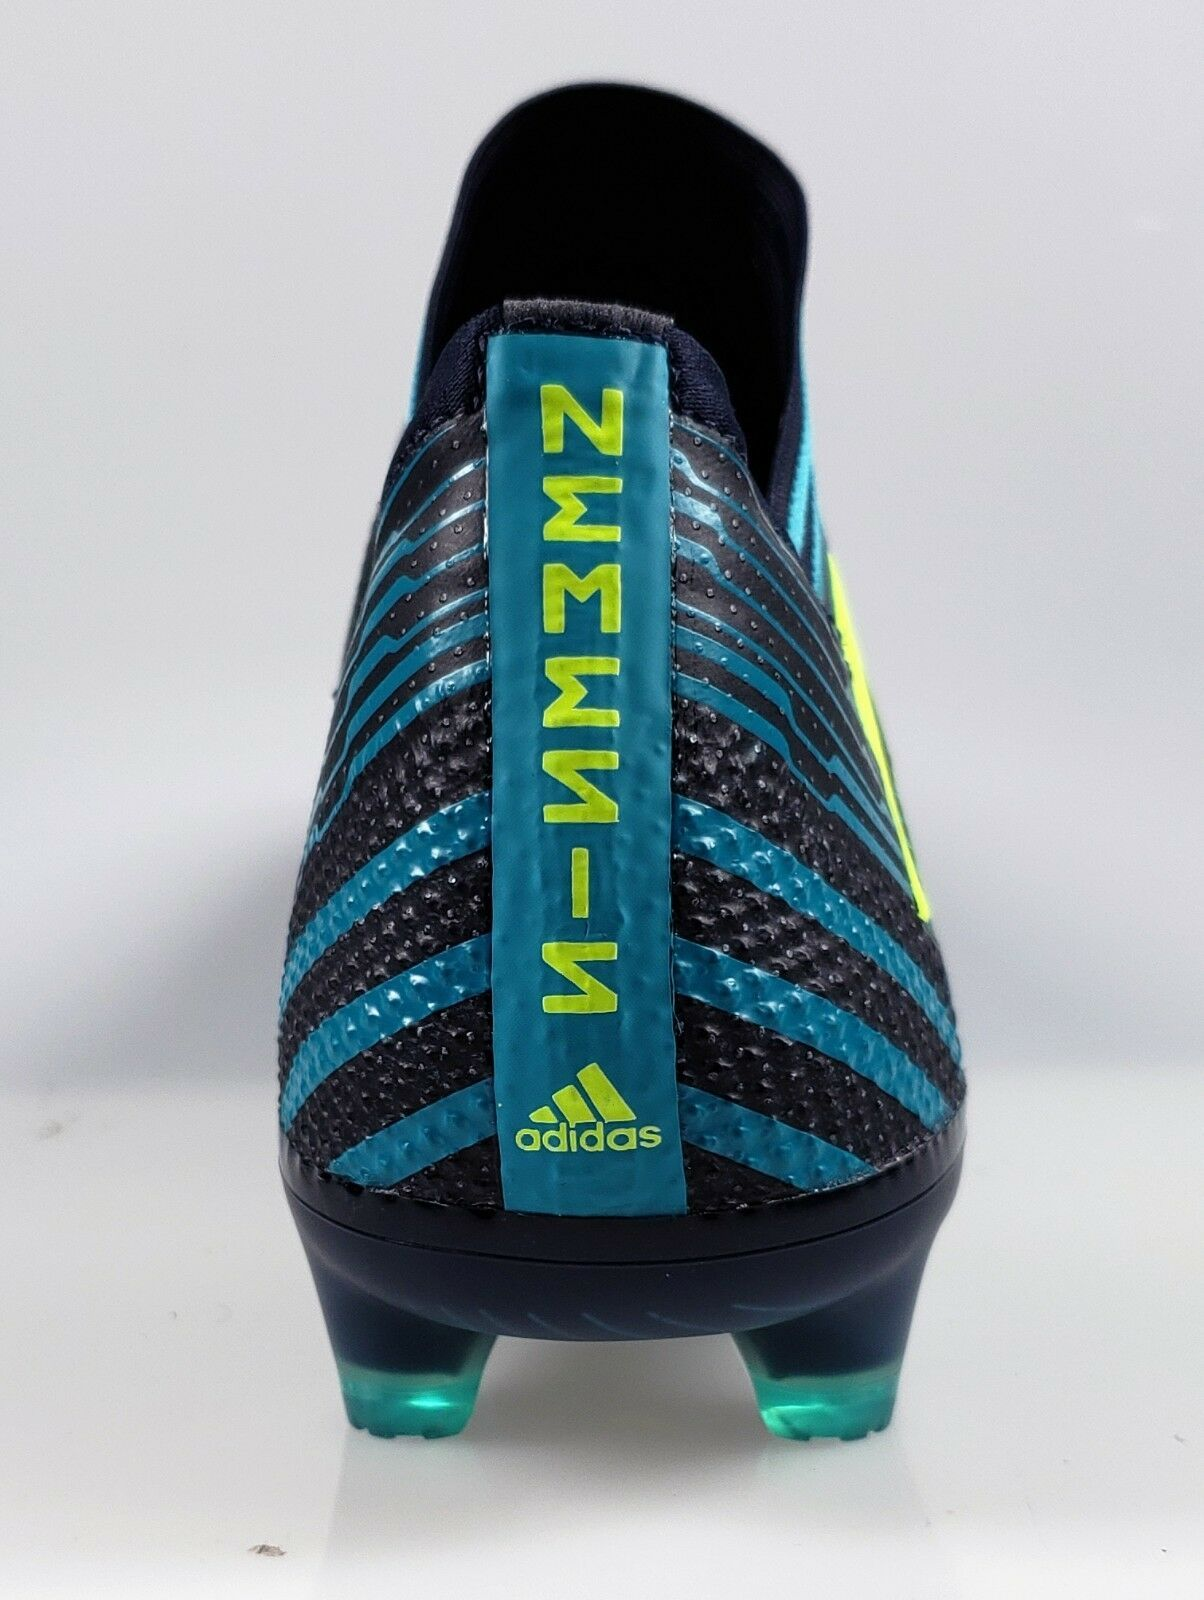 8fc0906b433 Authentic Adidas Nemeziz 17.1 Soccer Cleats and 50 similar items